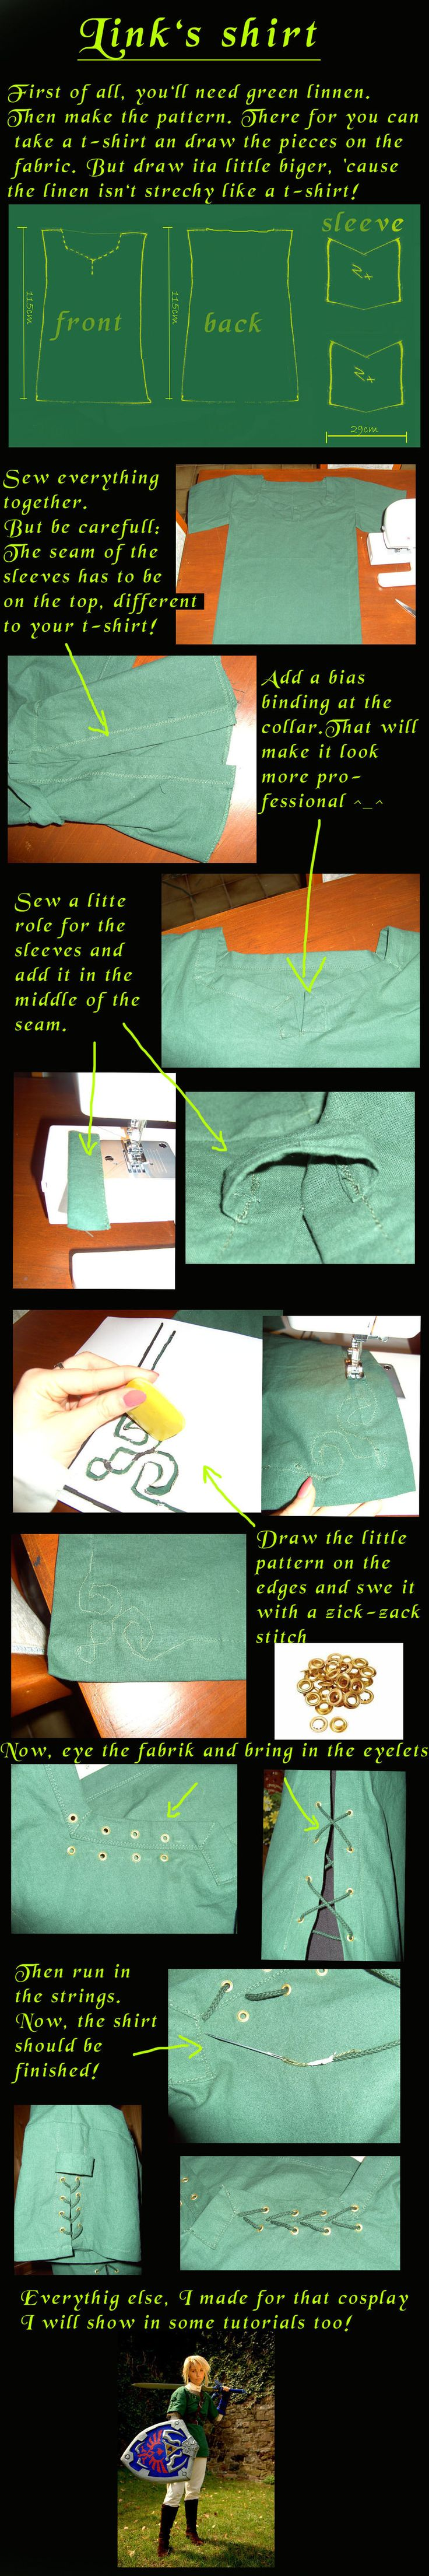 Link's shirt Tutorial. Legend of Zelda Cosplay. by Eressea-sama.deviantart.com on @deviantART